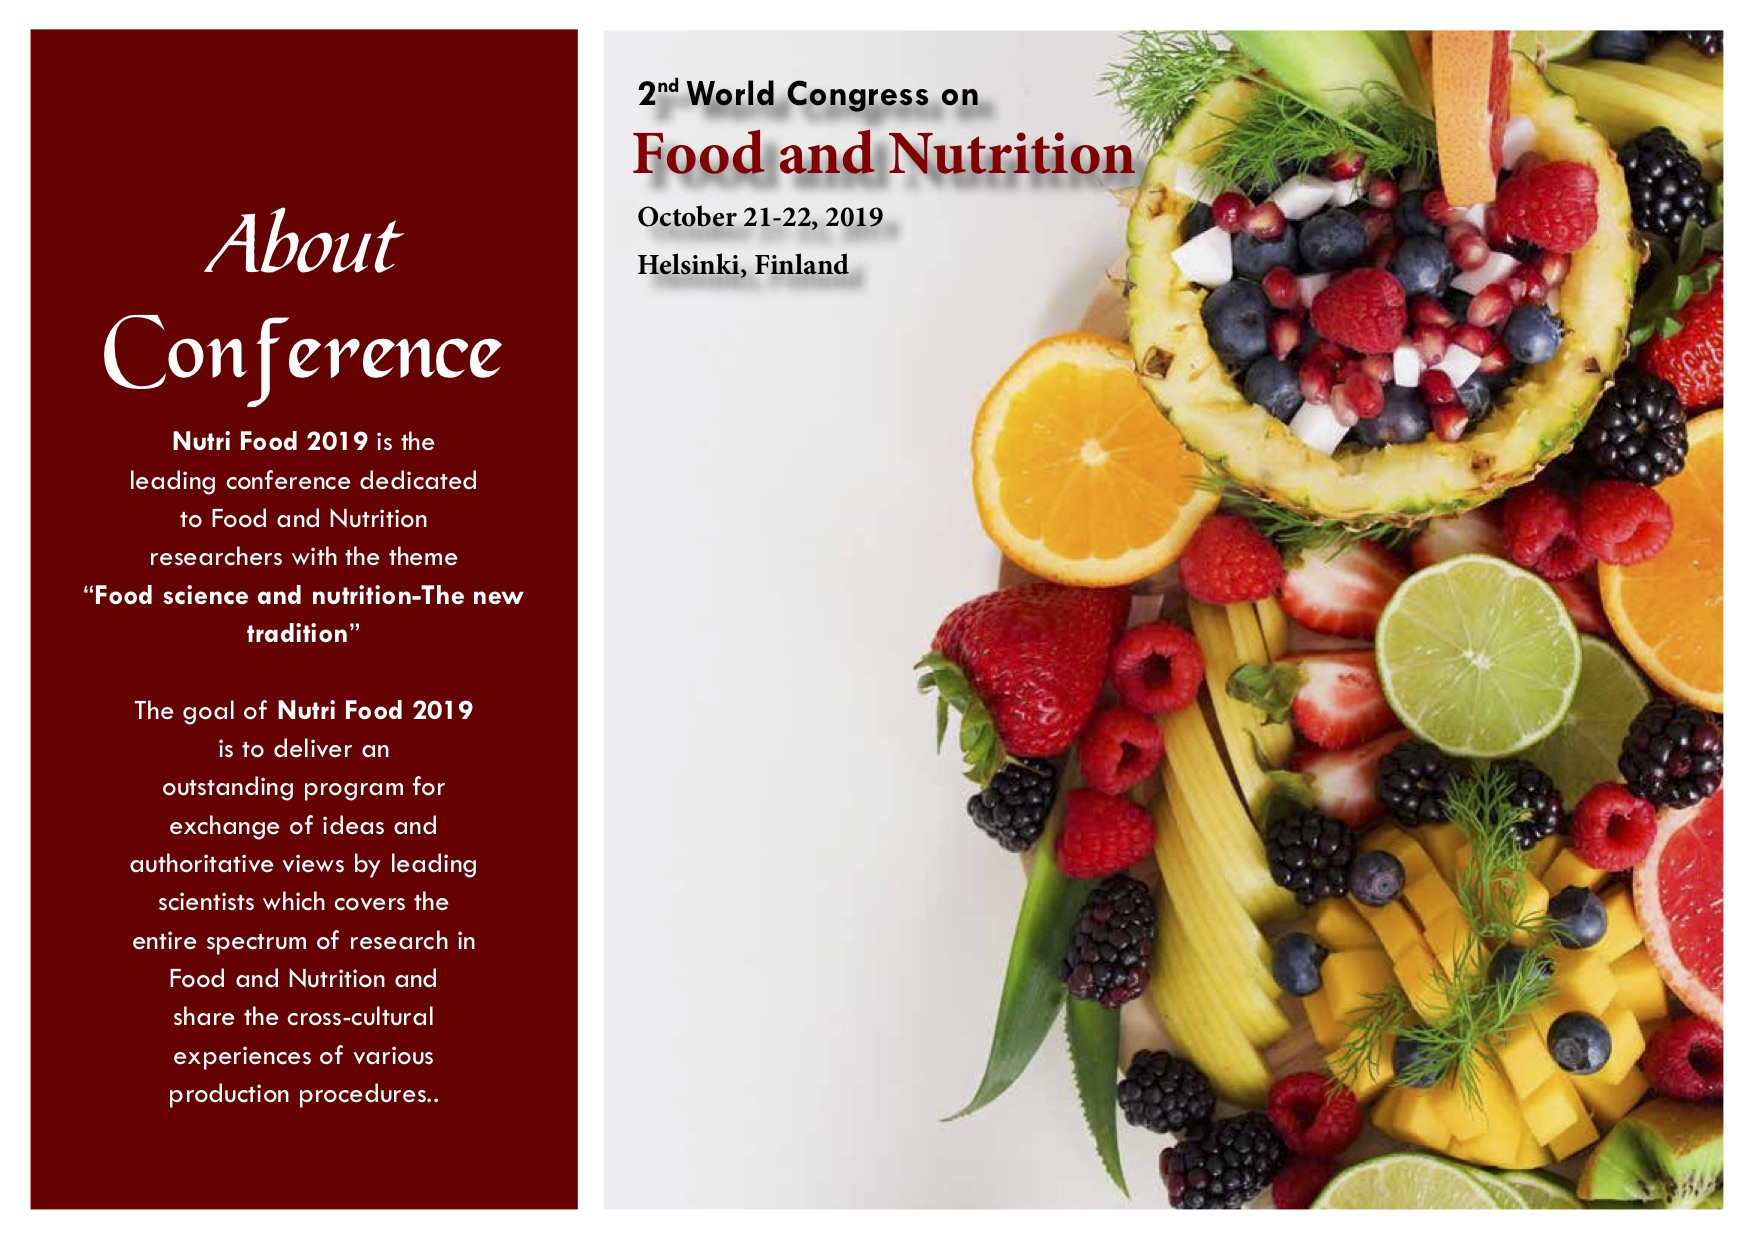 2nd World Congress on Food and Nutrition - Middle East Conferences